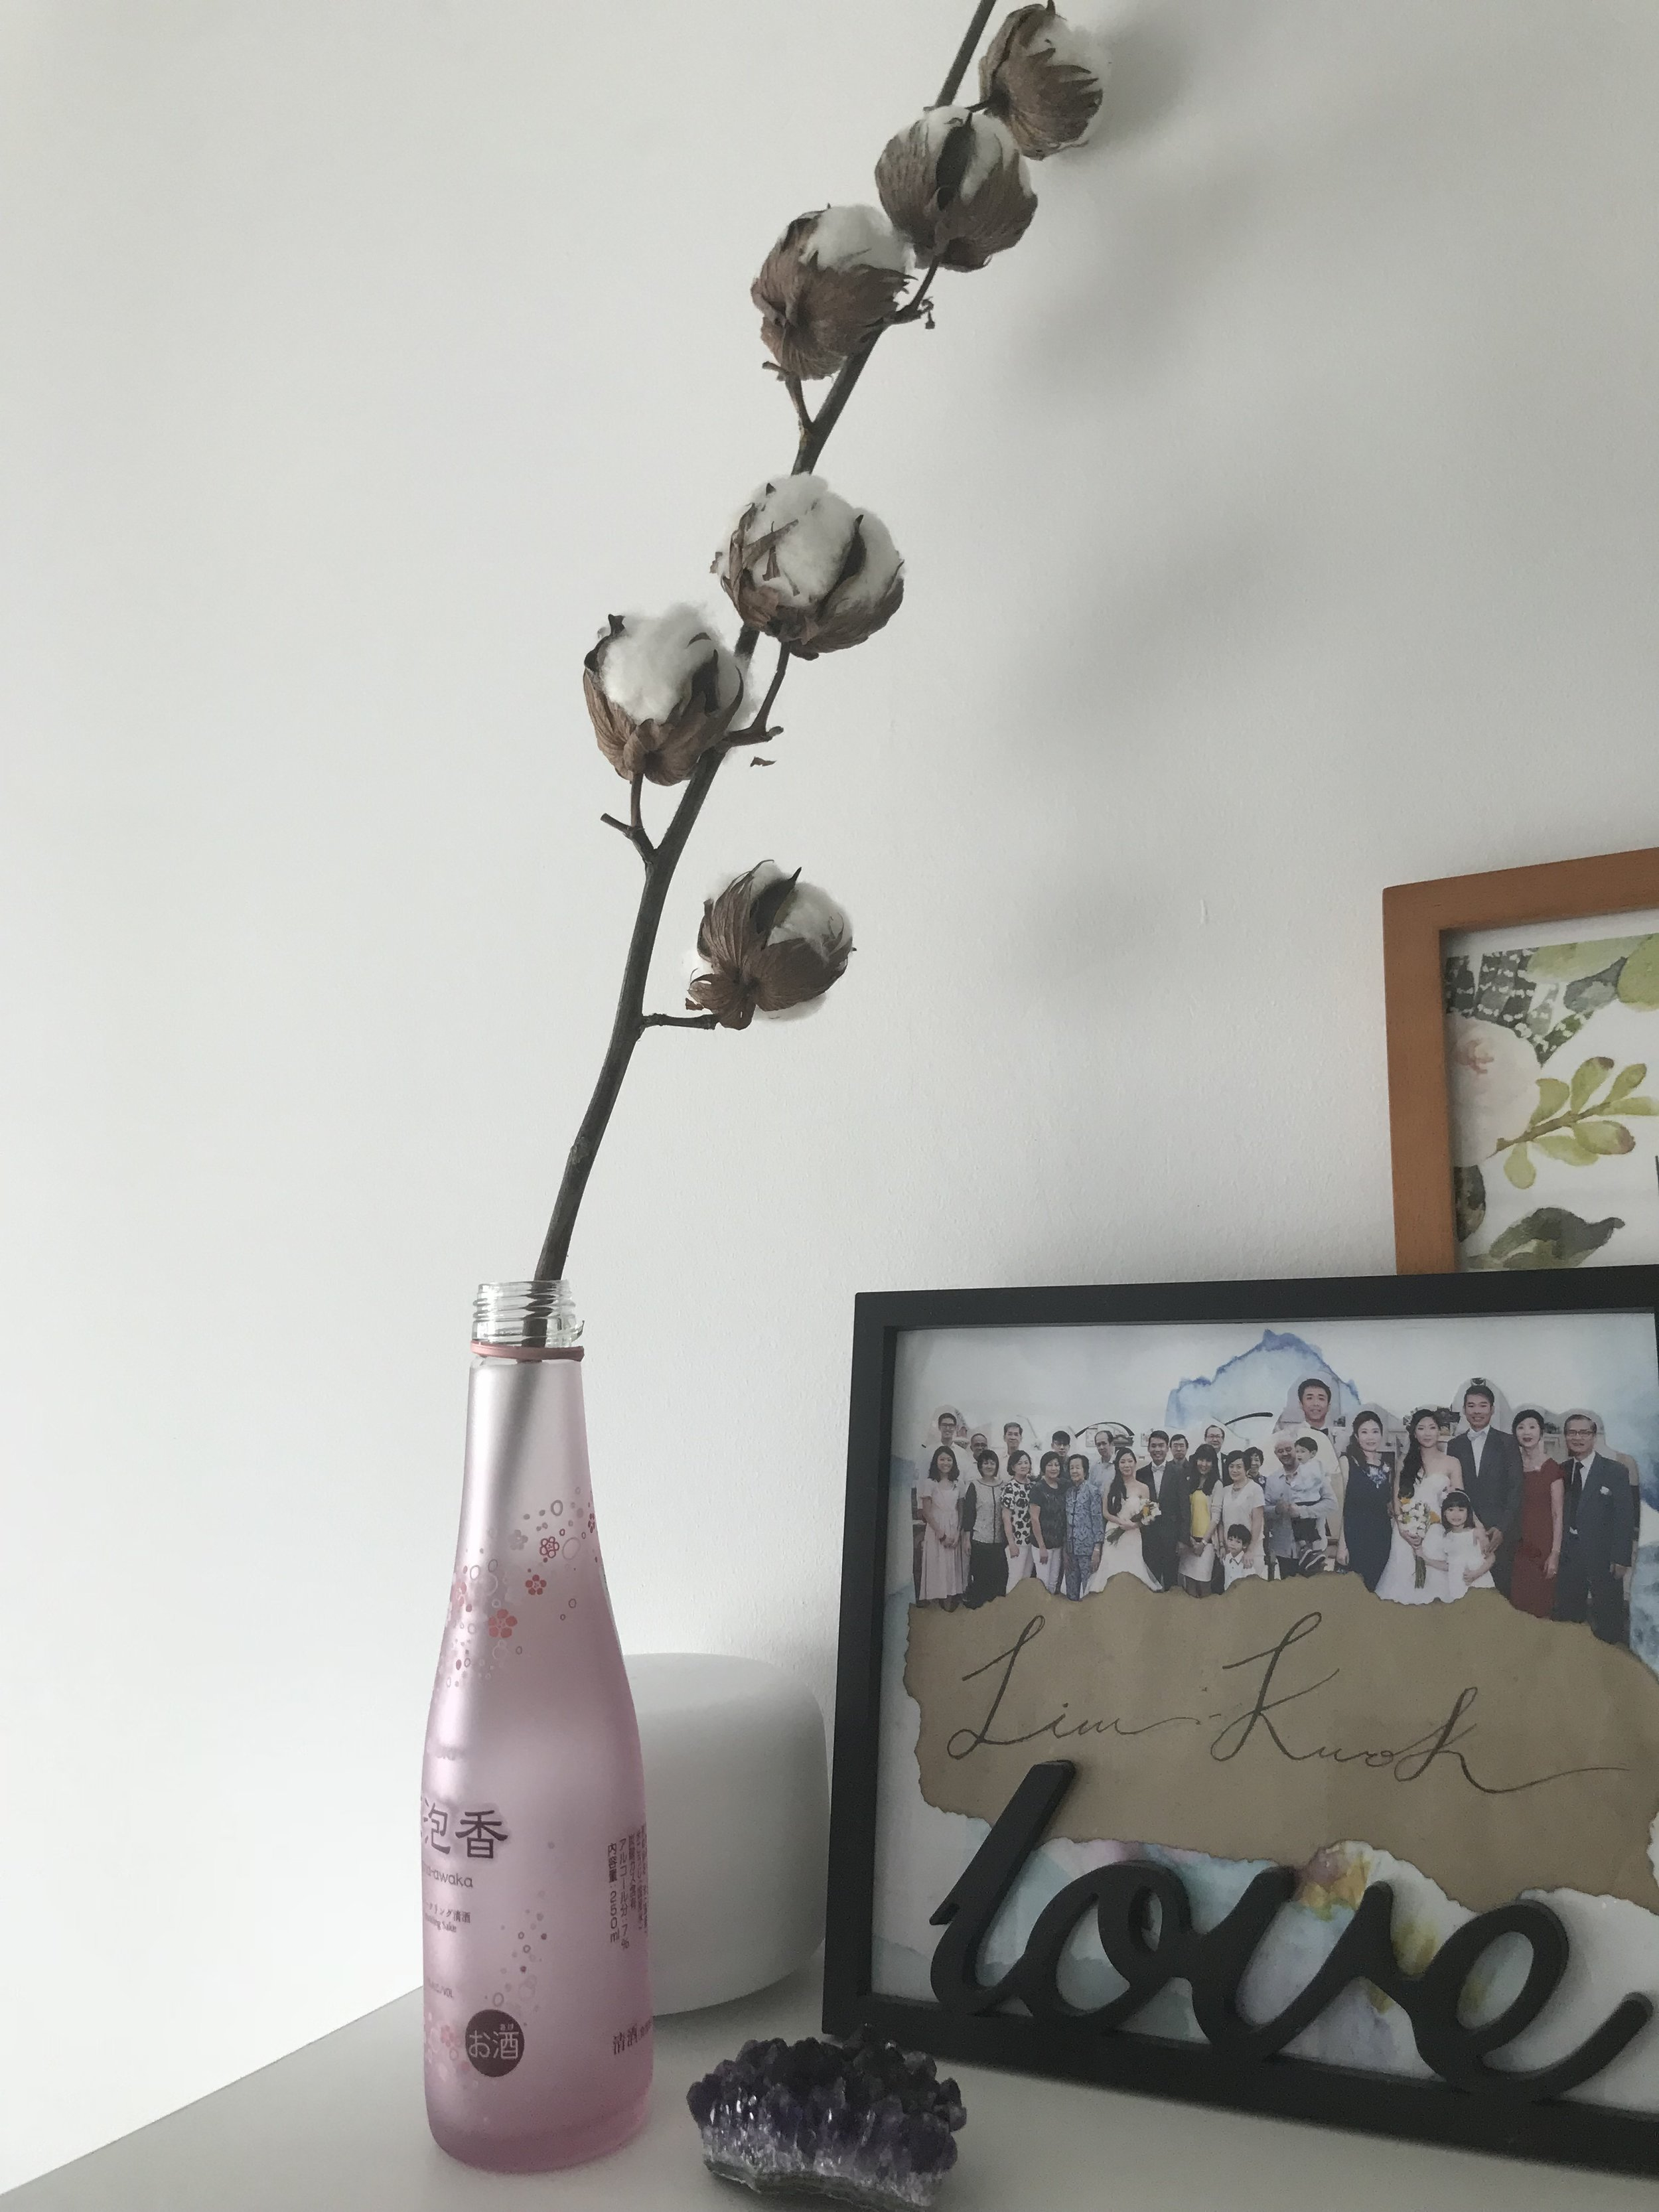 Sake Bottle - A pretty ornament for my pretty cotton plant.